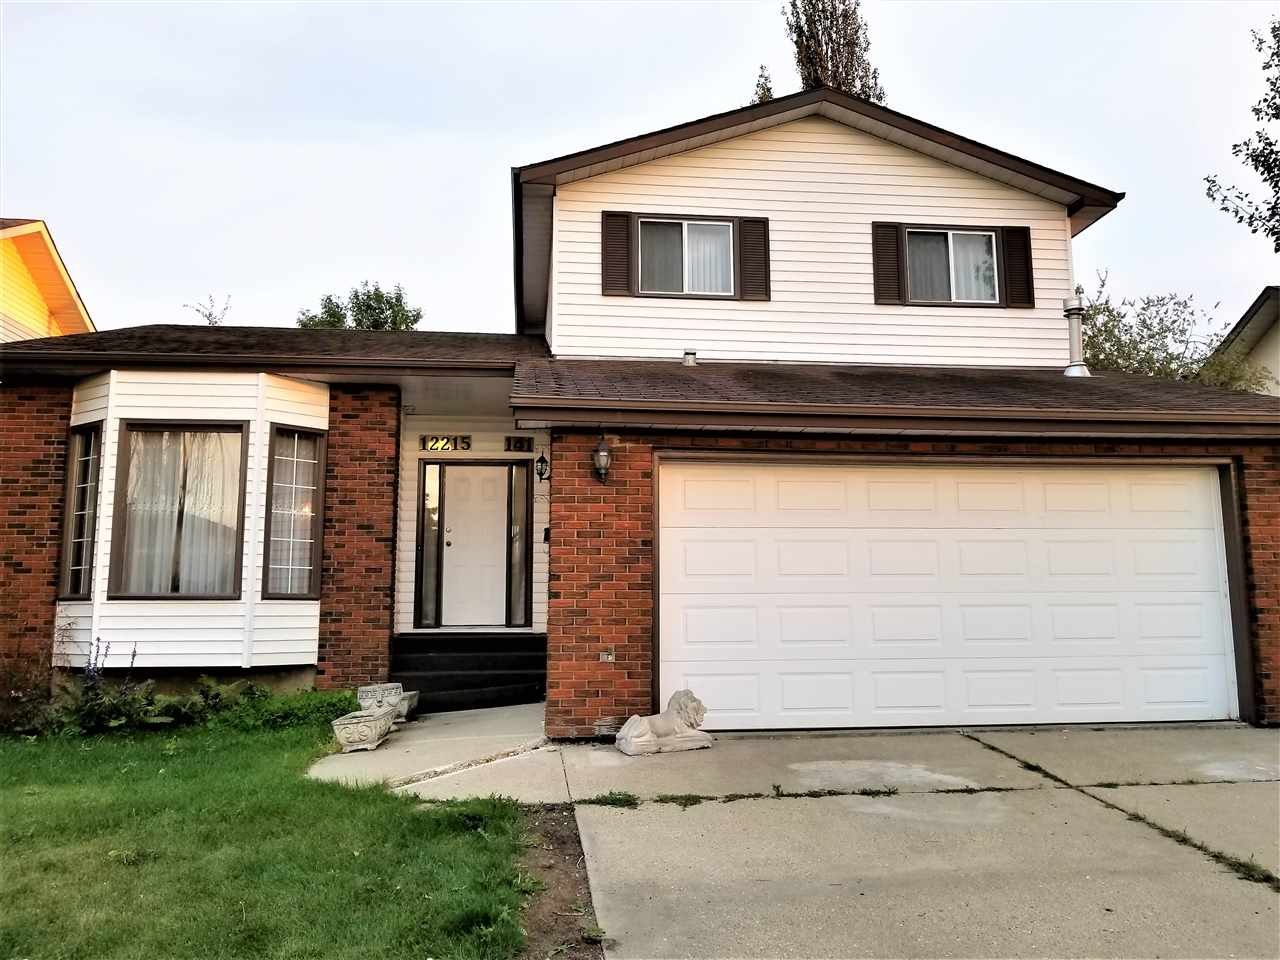 Looking for a large first time home or investment property in Carlisle? This 4 bedroom 2.5 Bathroom home is perfect for a New Home Buyer looking to have the kids attend any of the great schools in the area. Turn this diamond in the rough into a spectacular home and have pride of ownership while you work on building equity in this great neighbourhood. Front Living area has Vaulted Ceilings, Rear family room has Wood Burning Fireplace. Located on a quiet street it is very close to all kinds of shopping and transit. The Basement has 8 foot ceilings & is unfinished waiting for you, and the yard is very private with a vinyl no maintenance Fence, Double Garage is Heated. Home has Sprinkler System, Built In Vacuum & Water Softener.